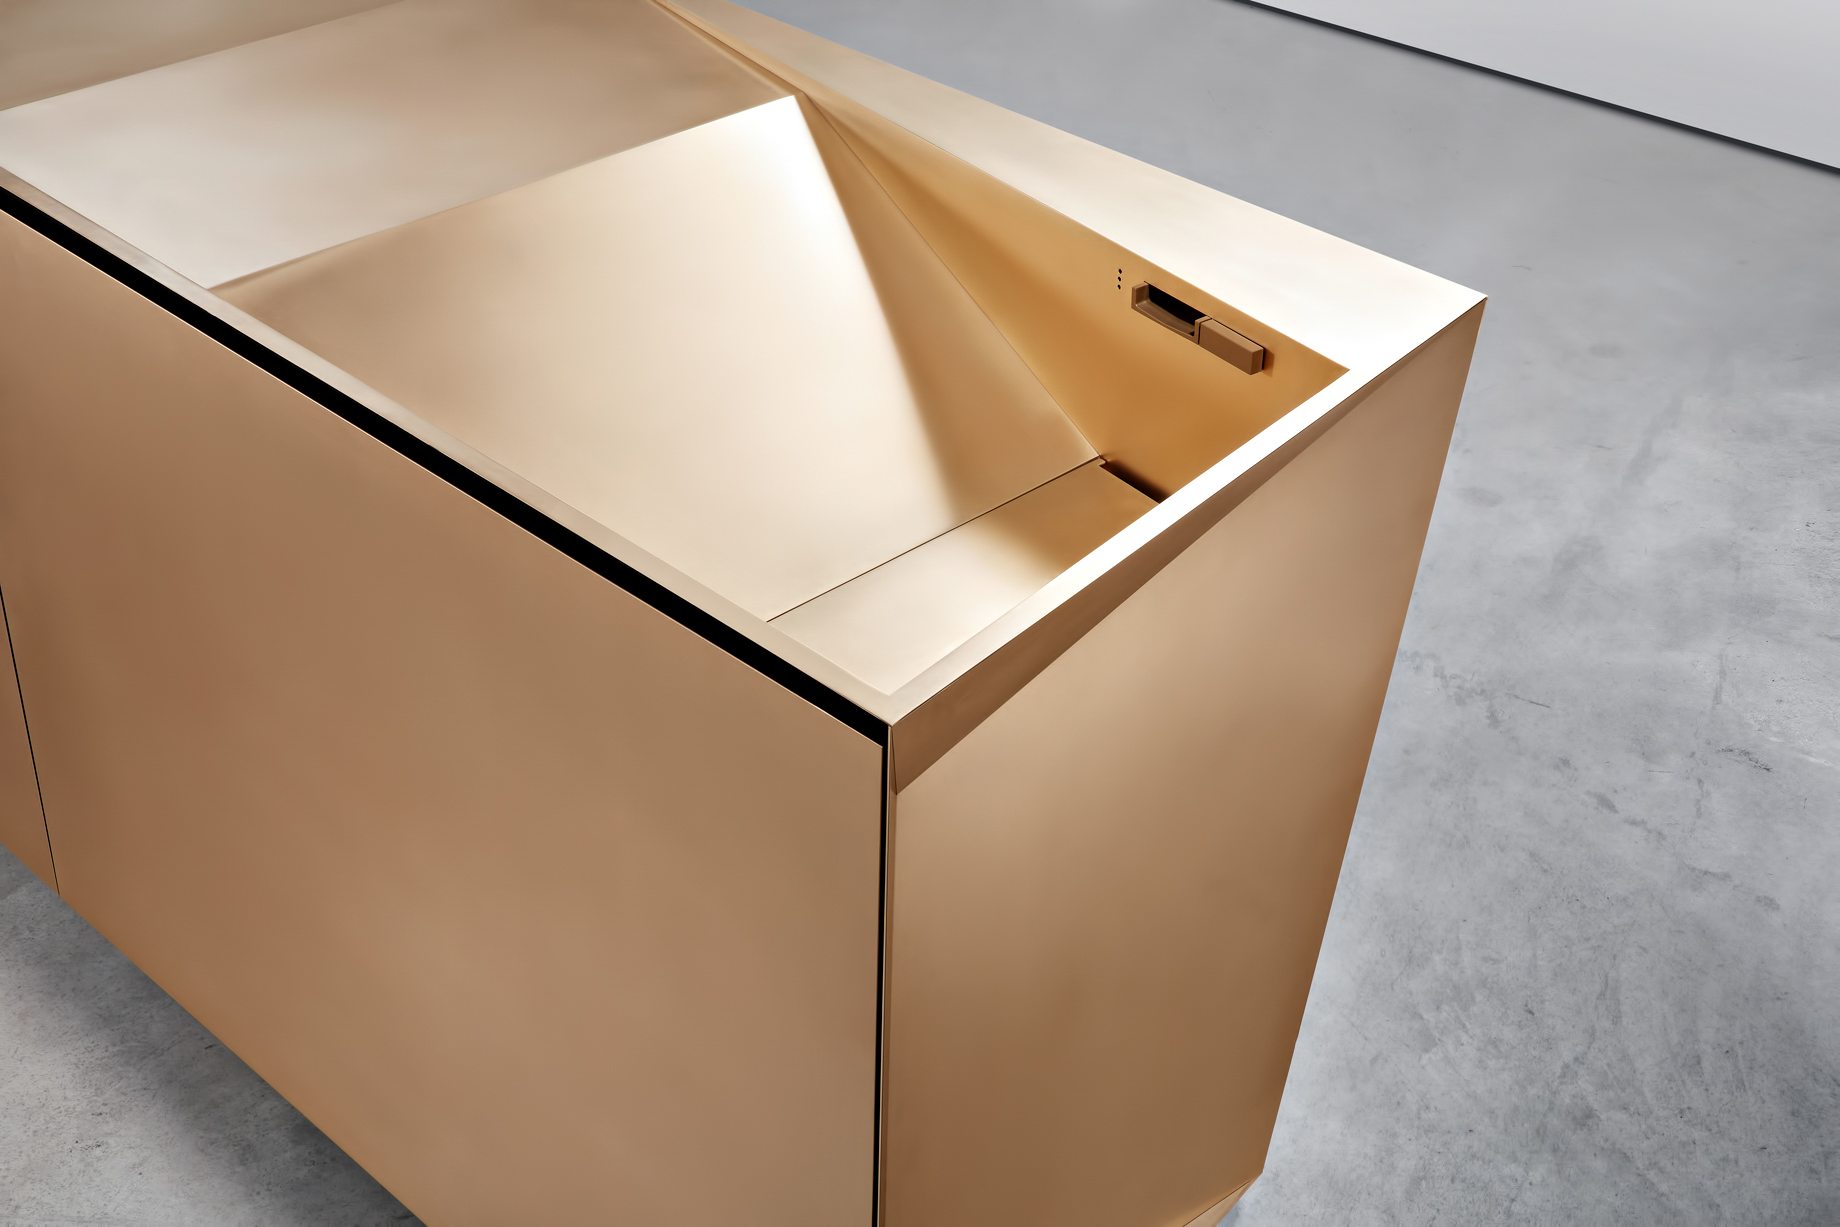 Iconic Steininger FOLD High Tech Kitchen Block Design Inspired by Origami - Folding takes on a functional form